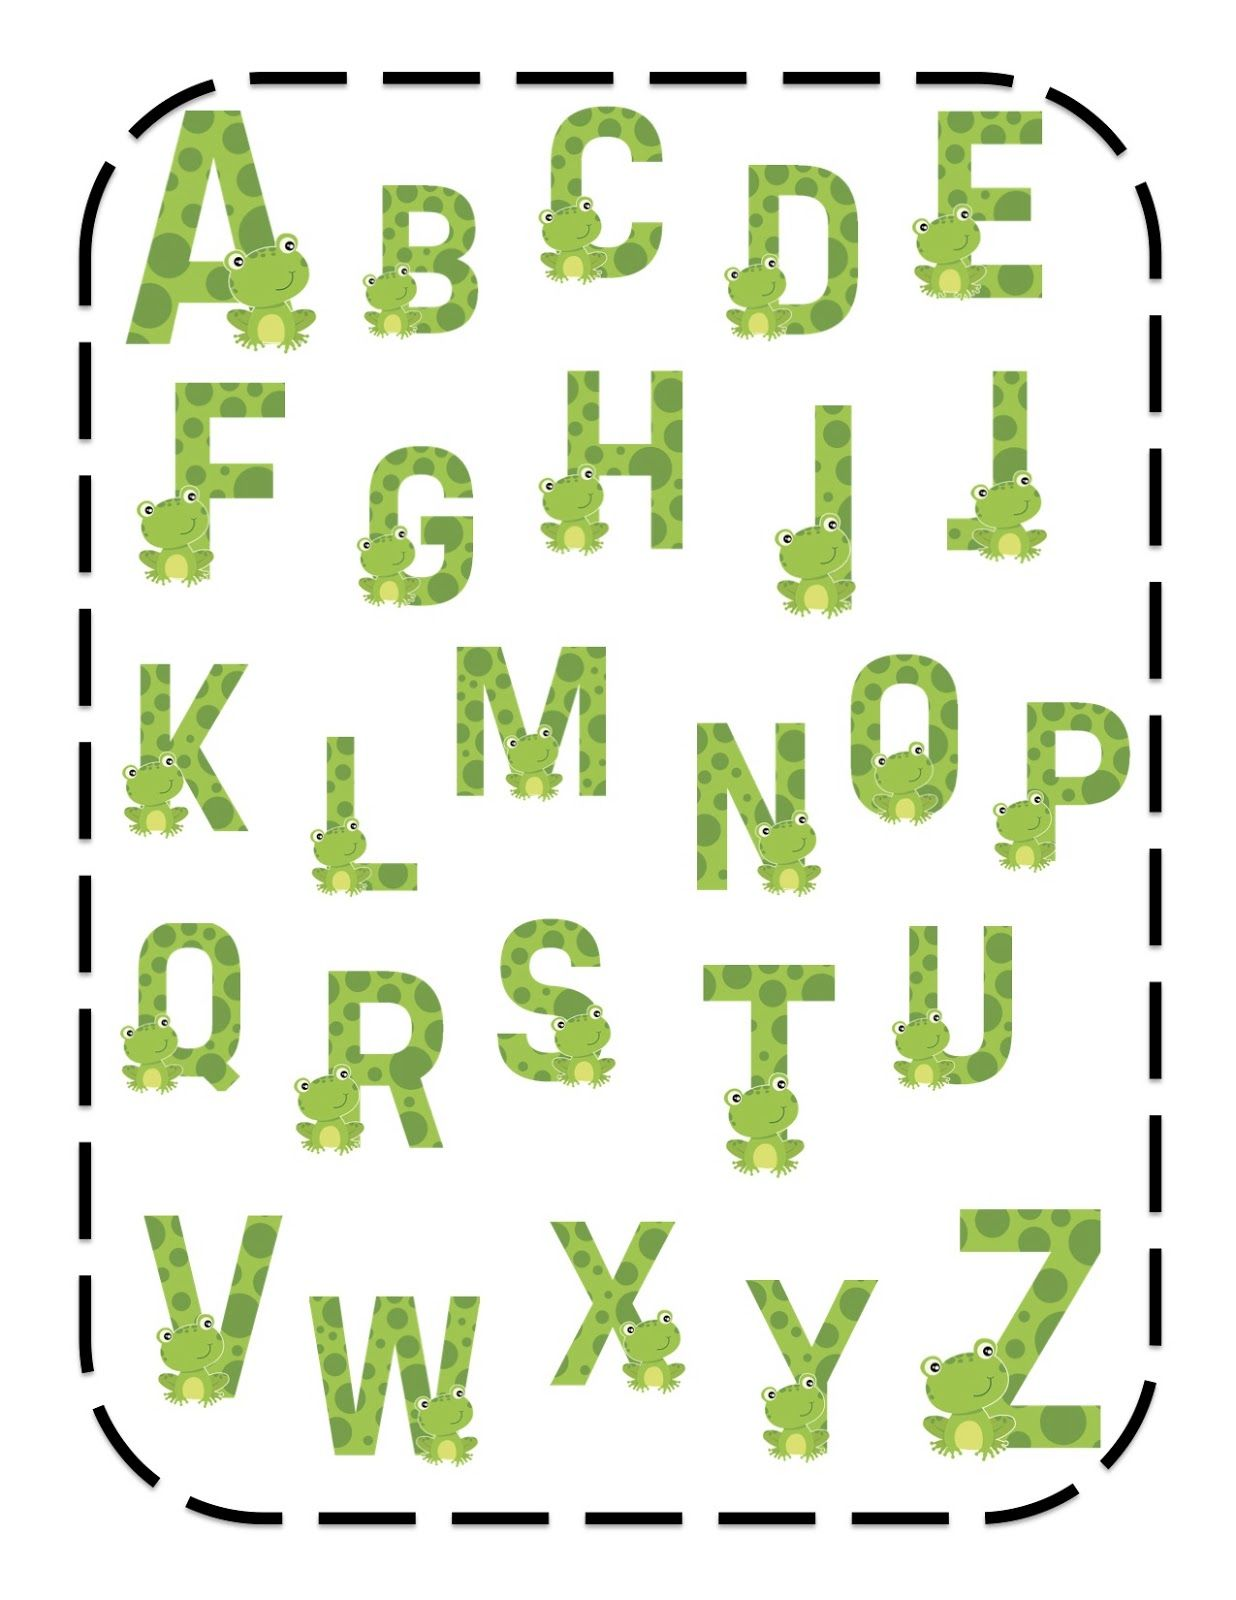 Frog Alphabet | * Frog - Pictures | Pinterest | Frogs and Frog pictures